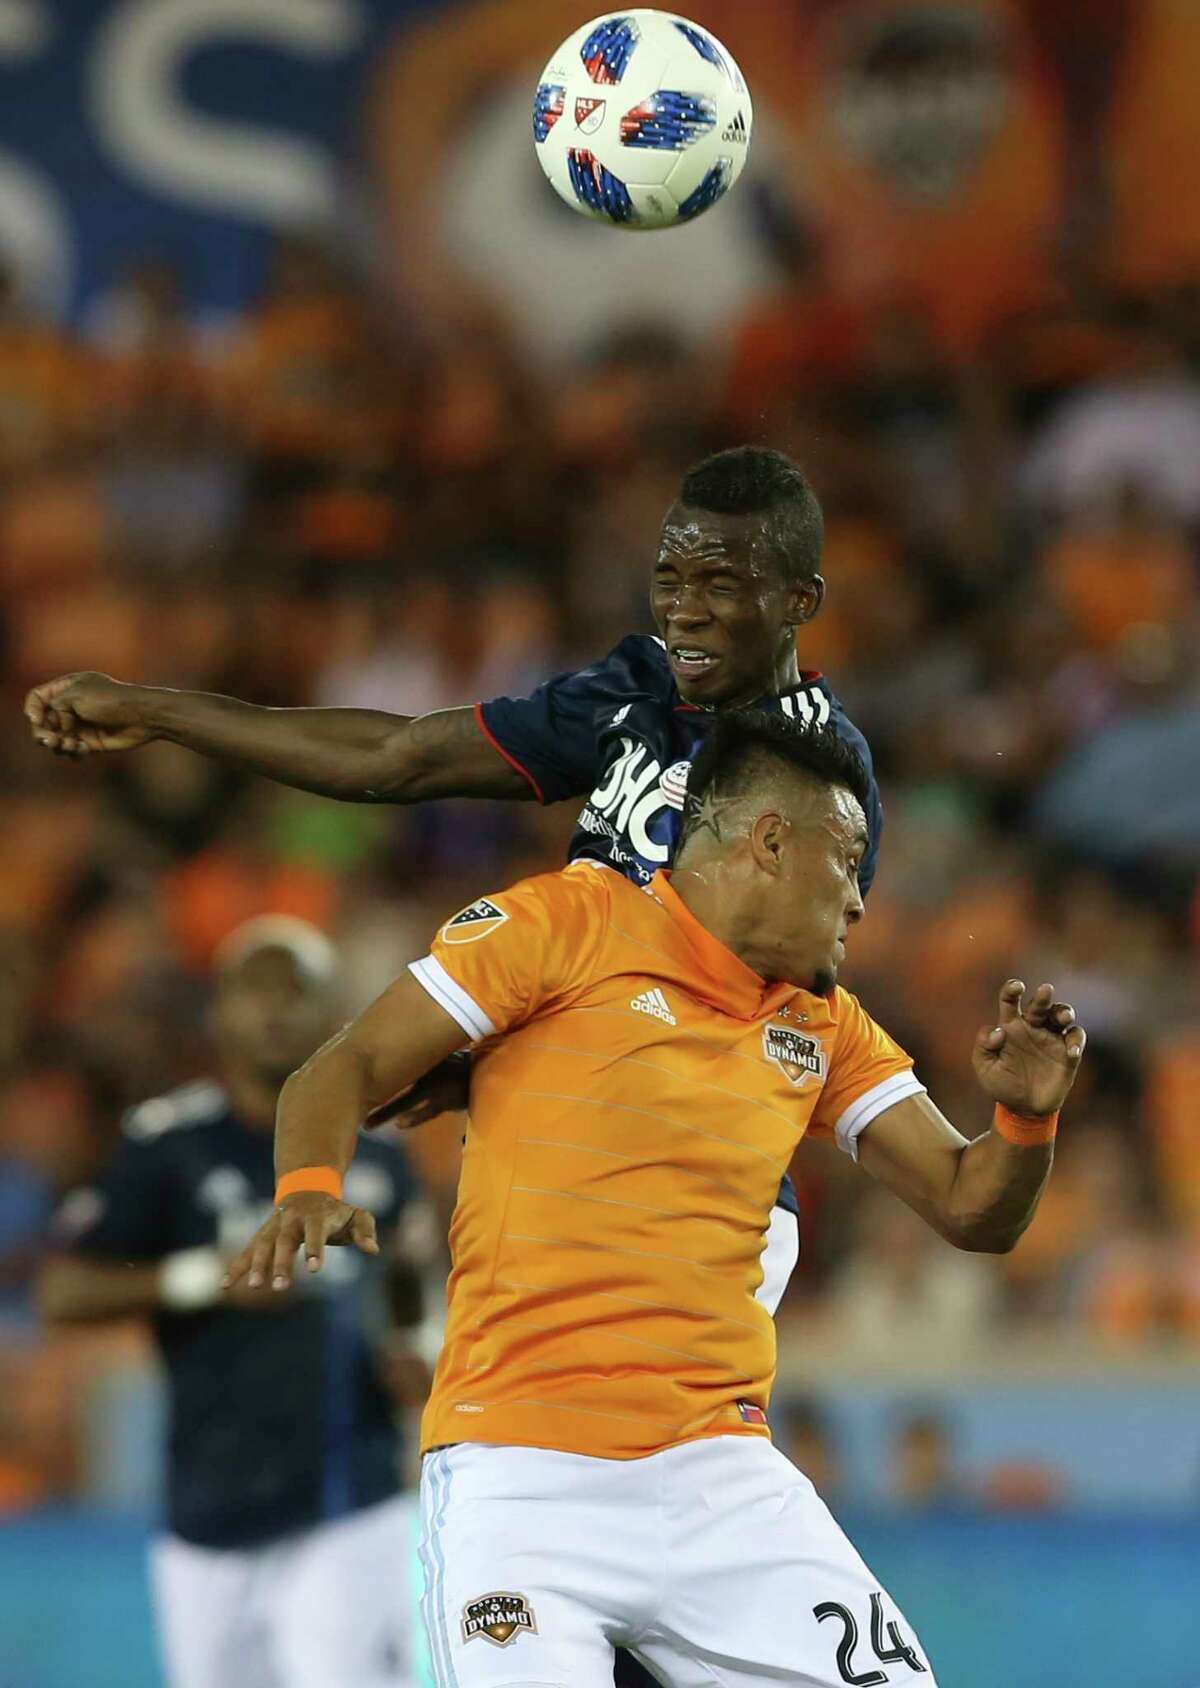 Houston Dynamo midfielder Darwin Ceren (24) and New England Revolution midfielder Luis Caicedo (27) go up for a header during the first half of the MLS game at BBVA Compass Stadium on Saturday, March 31, 2018, in Houston.